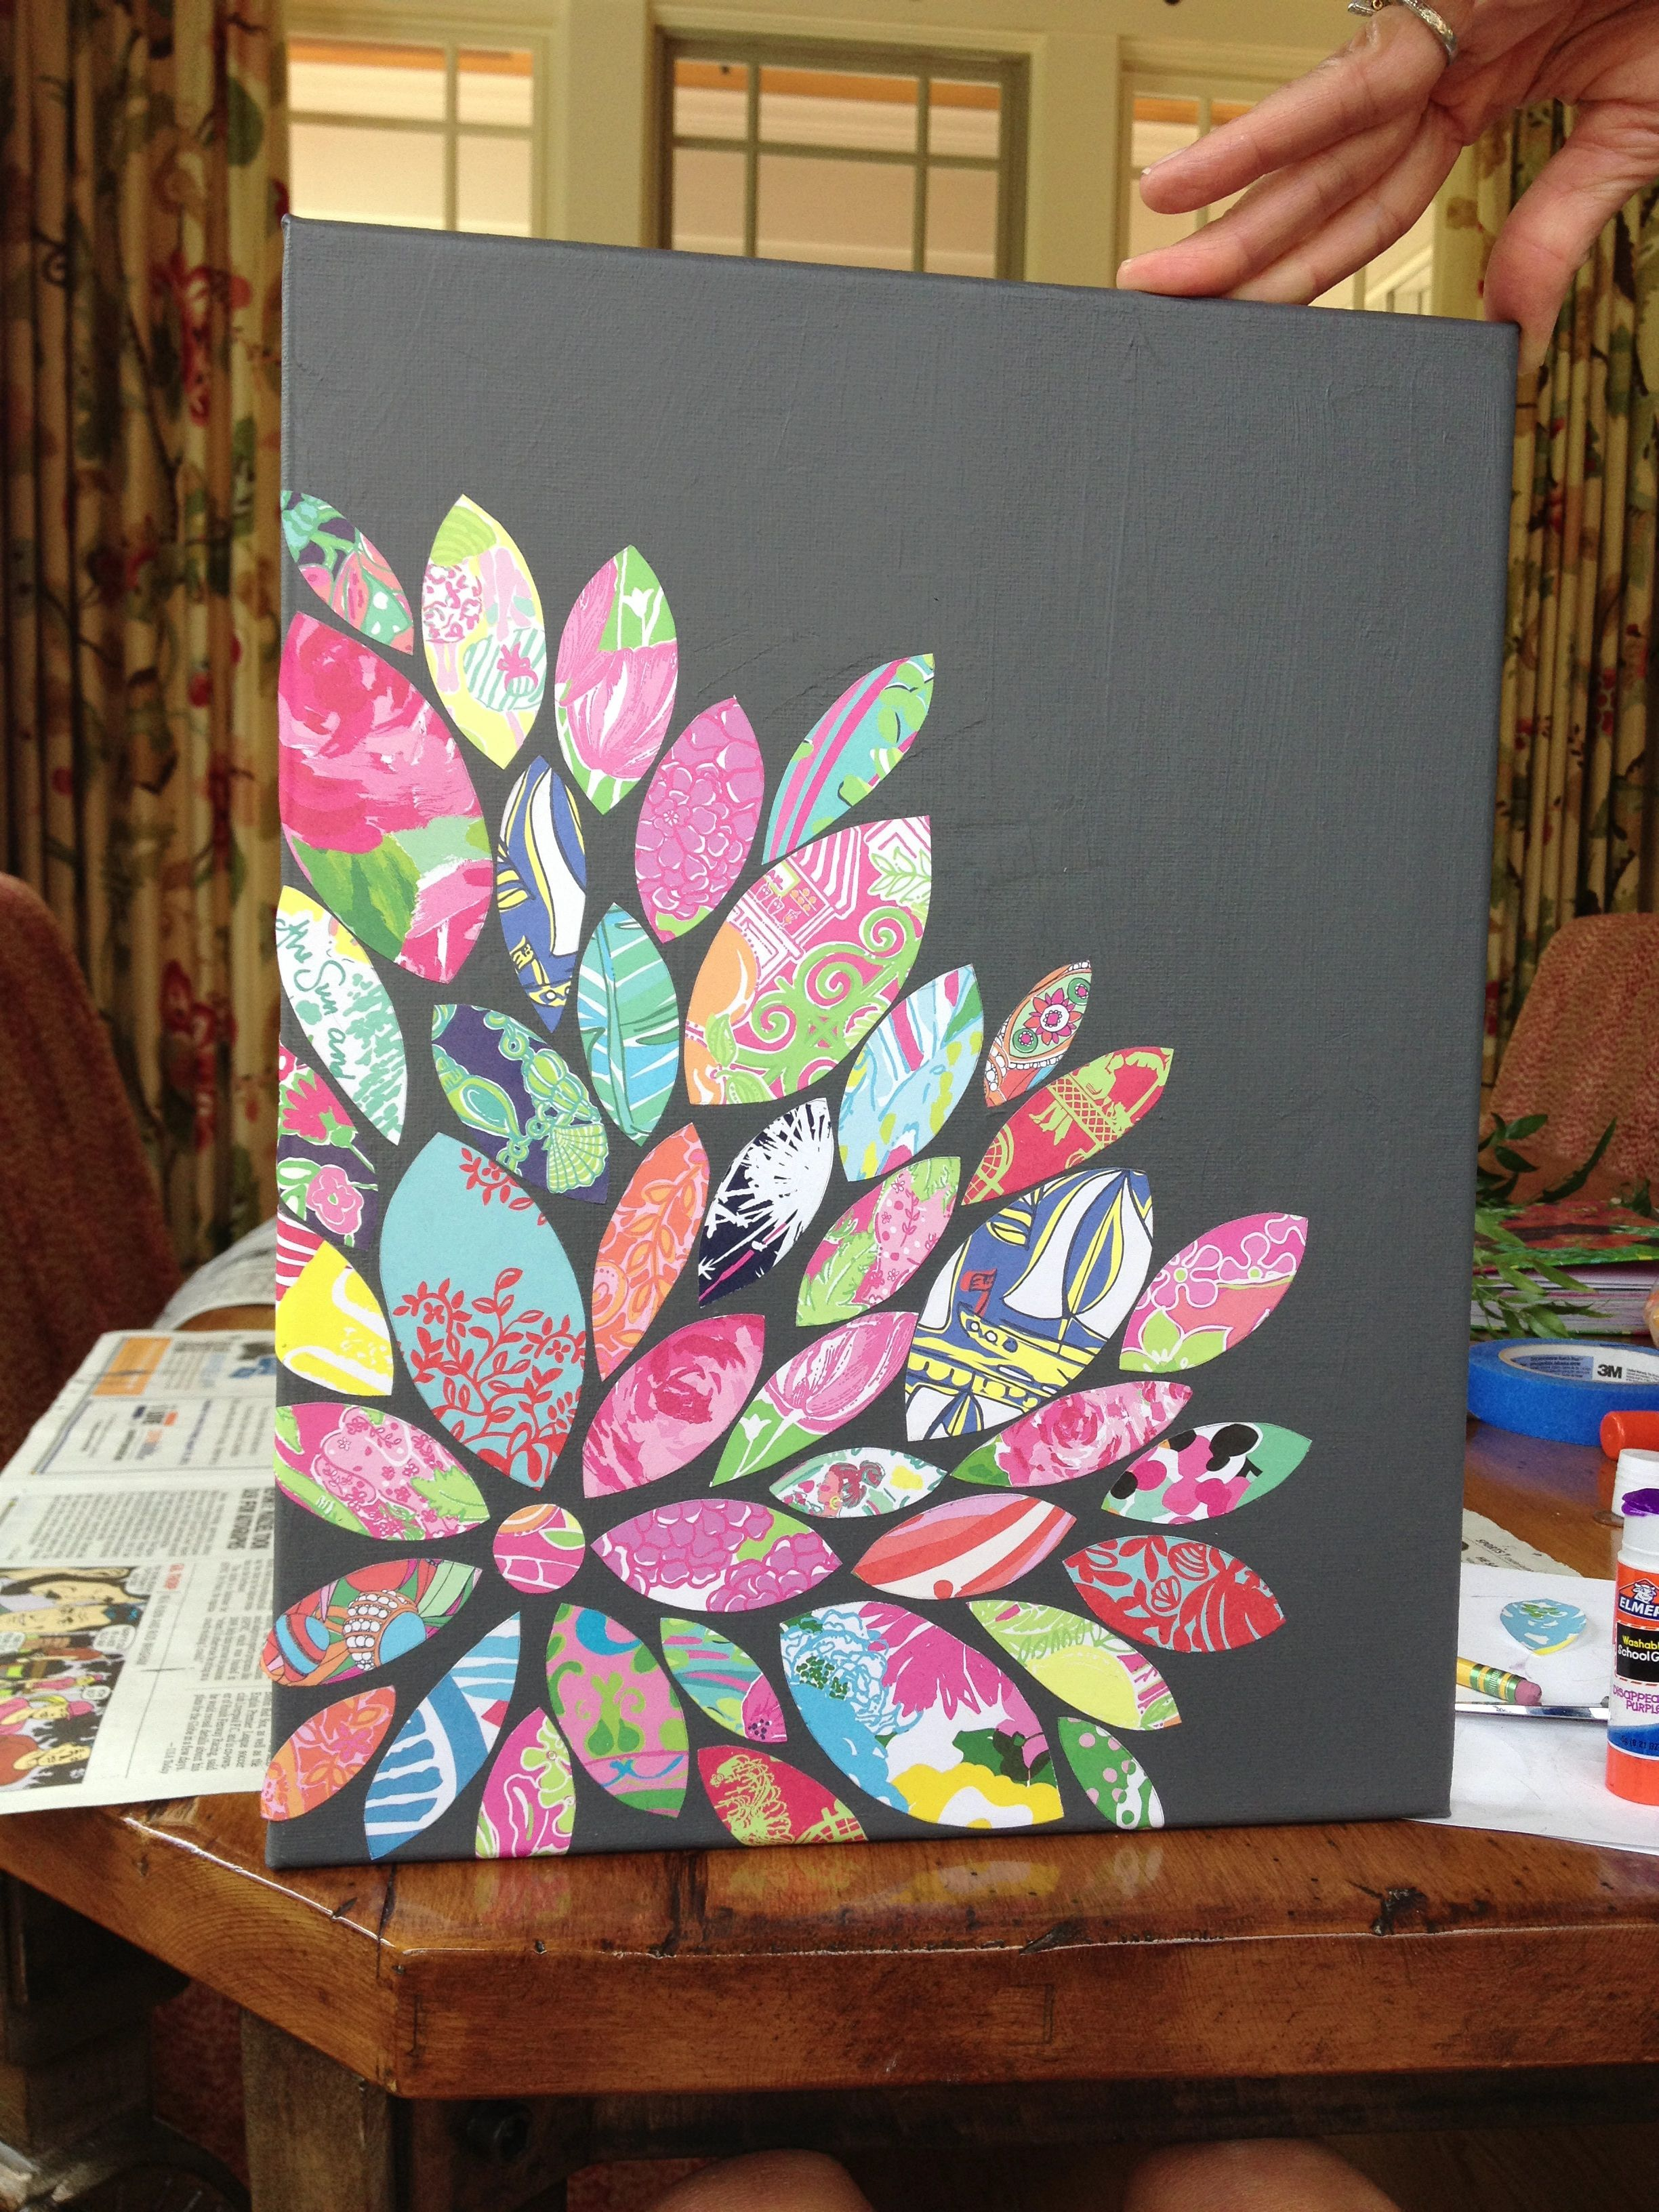 Scrapbook ideas on canvas - Fun Wall Accessory Using Old Lilly Agenda Pages On A Painted Canvas Lizzie Trudell